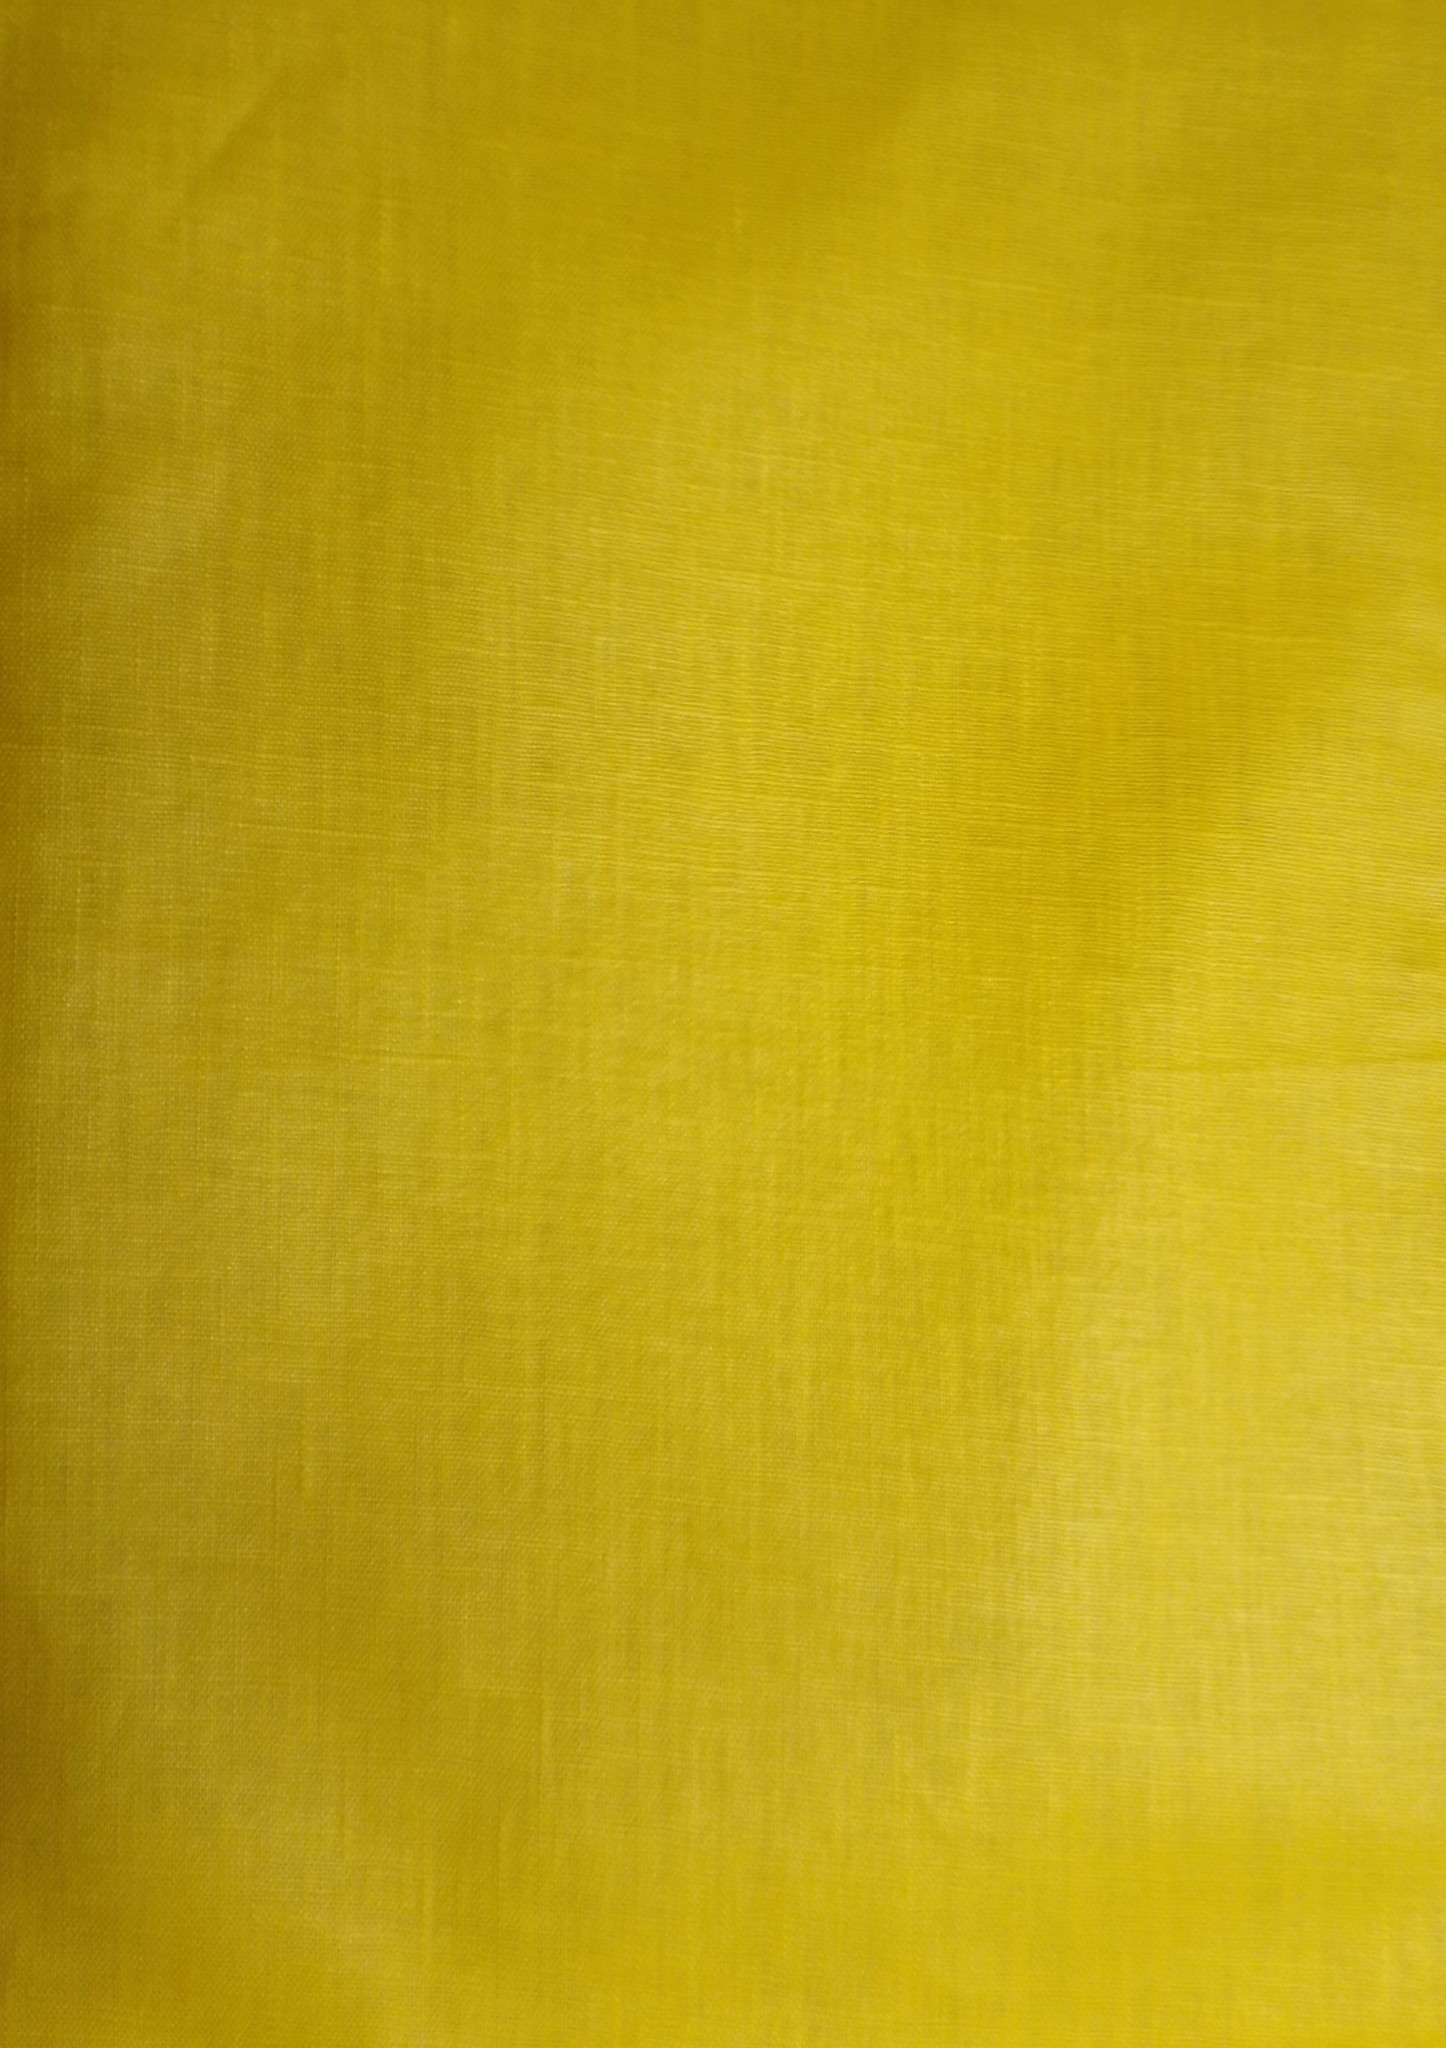 yellow coated linen